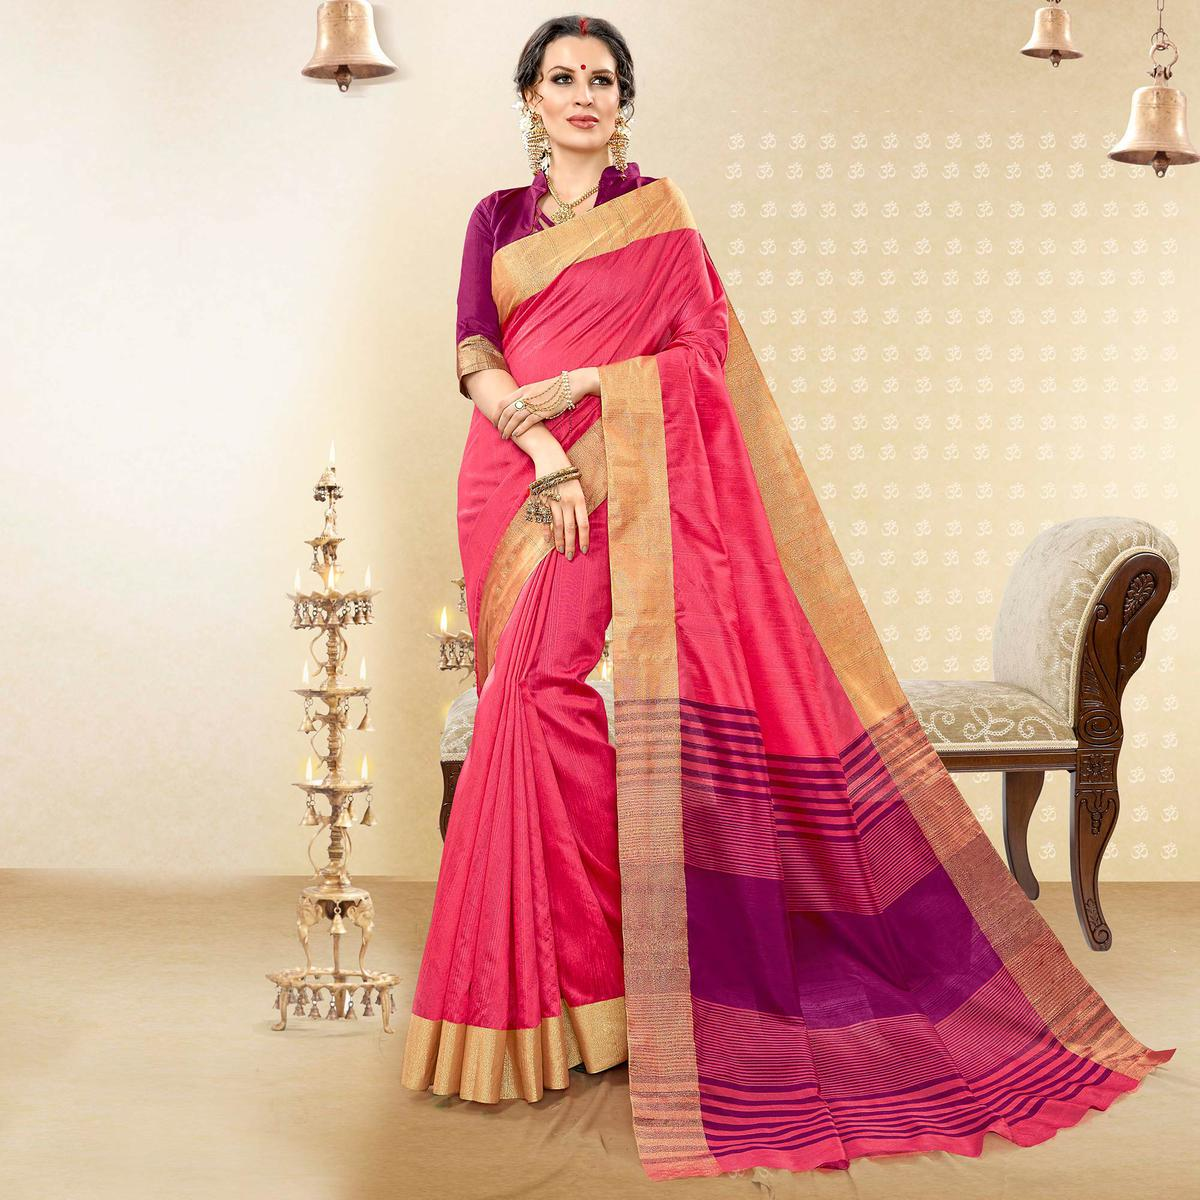 Flattering Fuchsia Pink Colored Festive Wear Woven Handloom Cotton Silk Saree